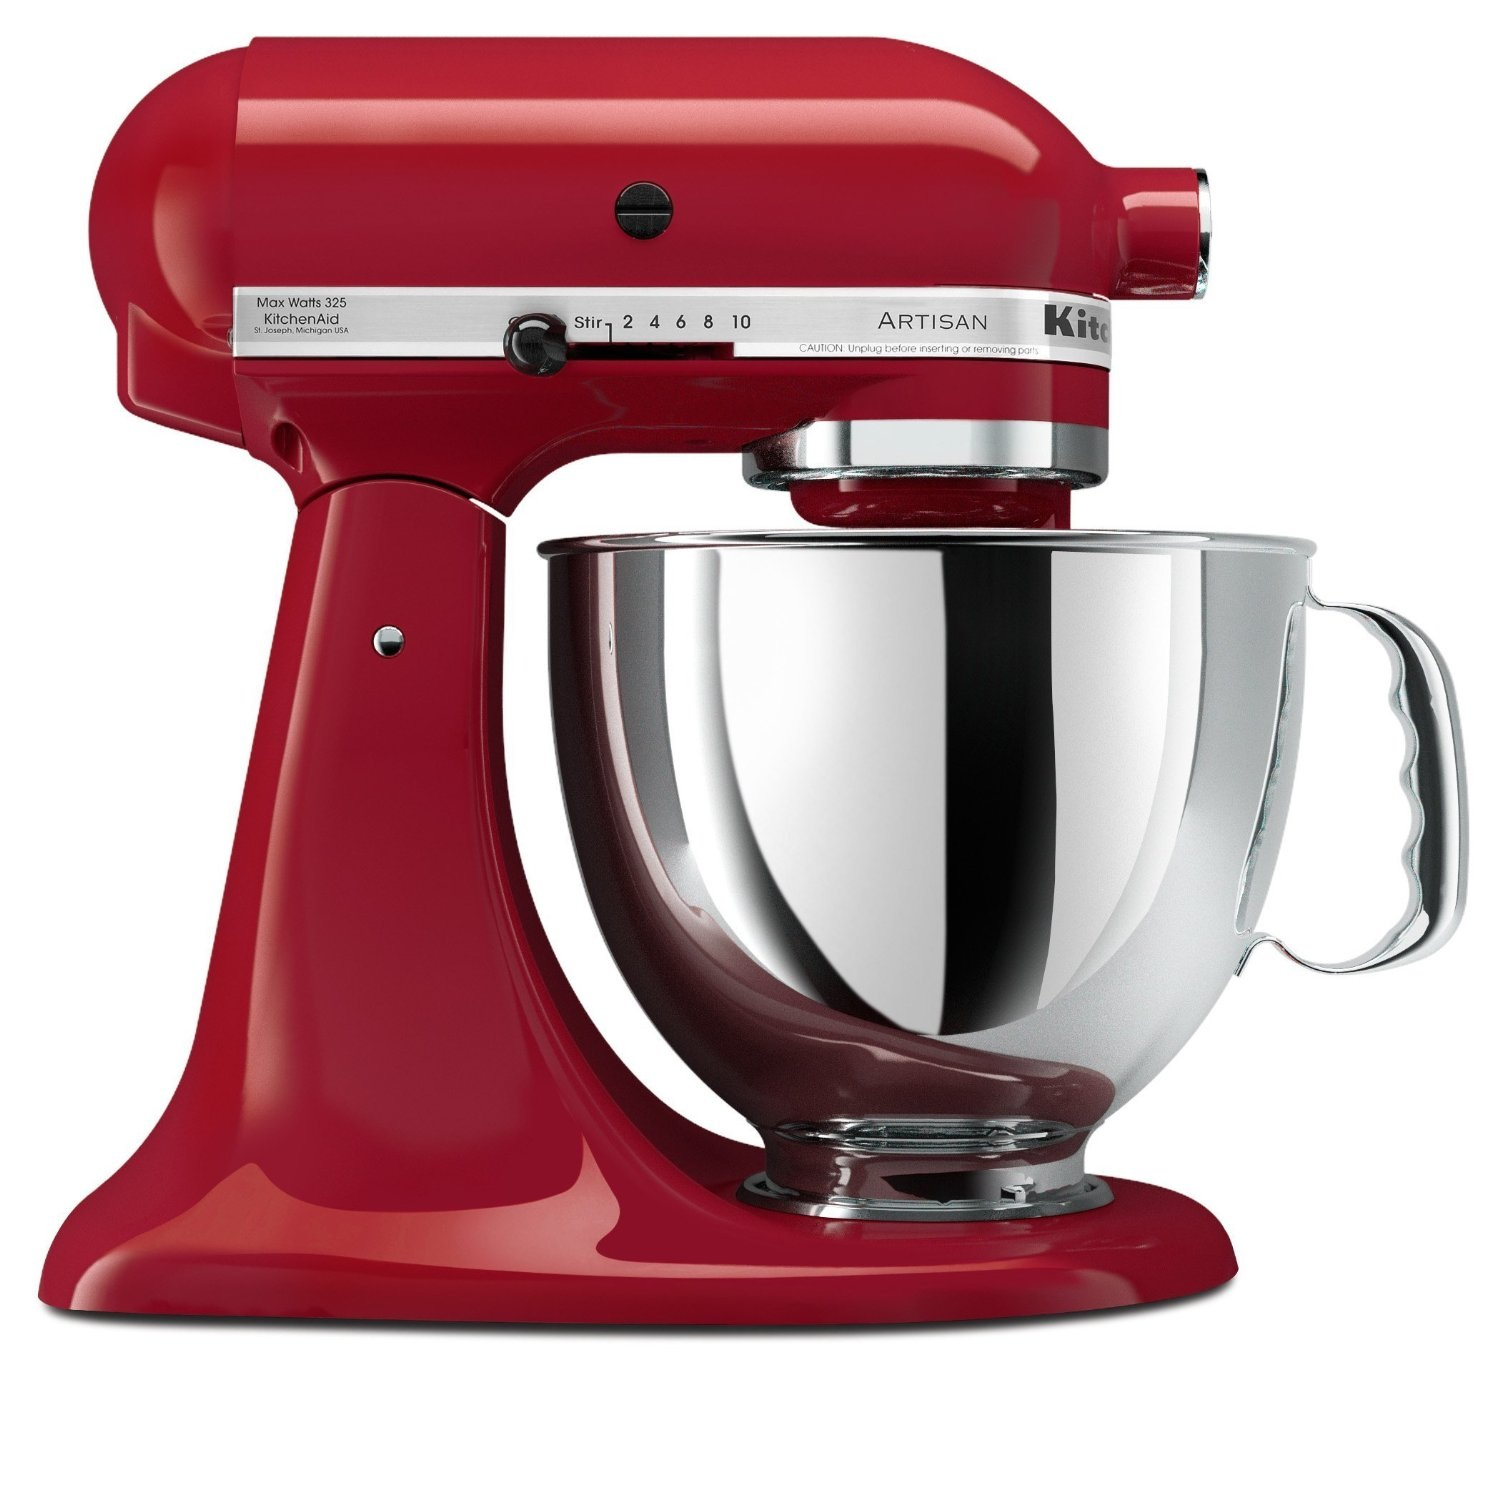 Review of KitchenAid Artisan Series 5-Quart Stand Mixer, KSM150PS - Series